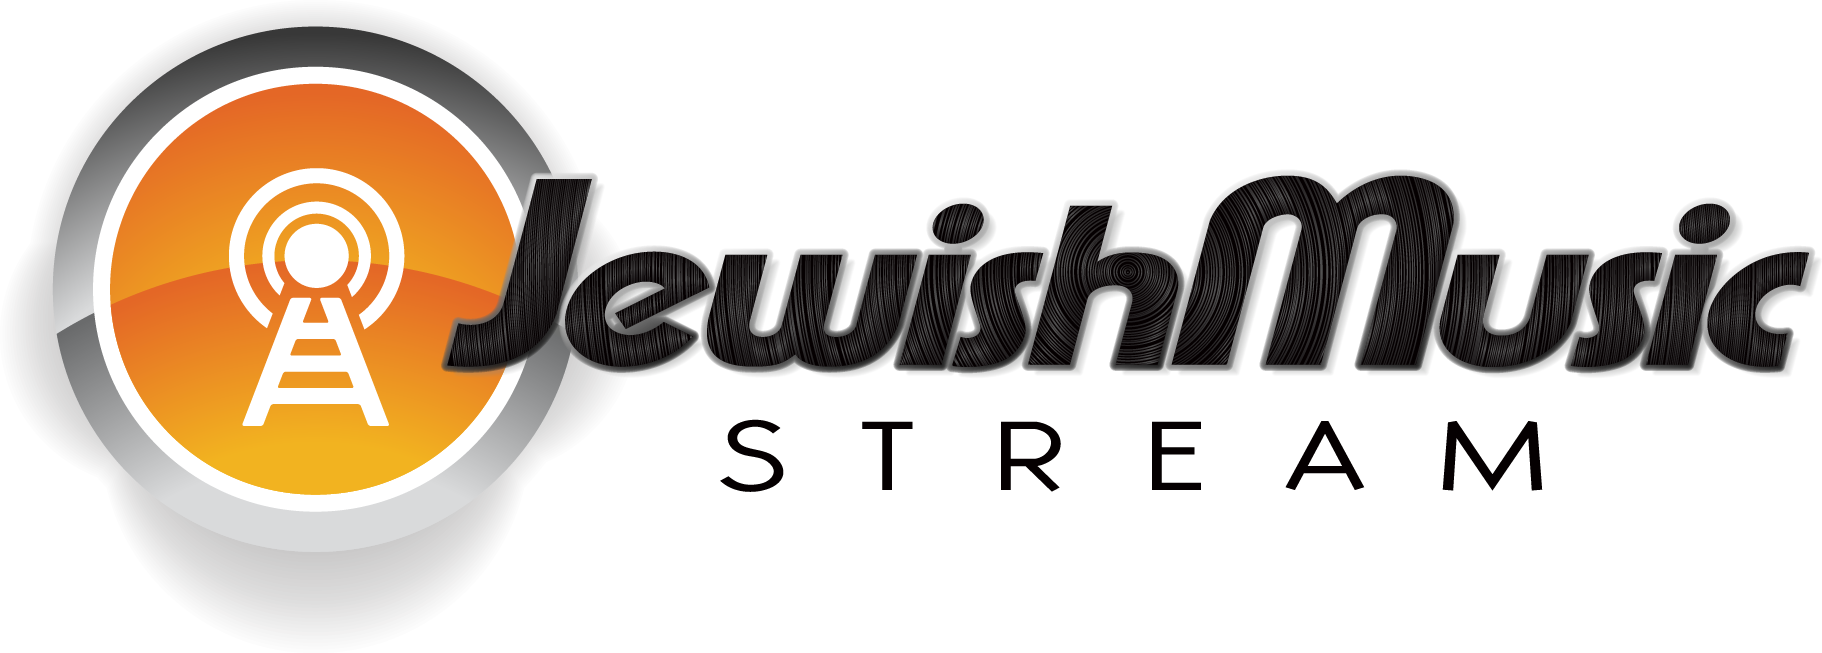 JewishMusic Stream - Streaming the Best Jewish Music Online!